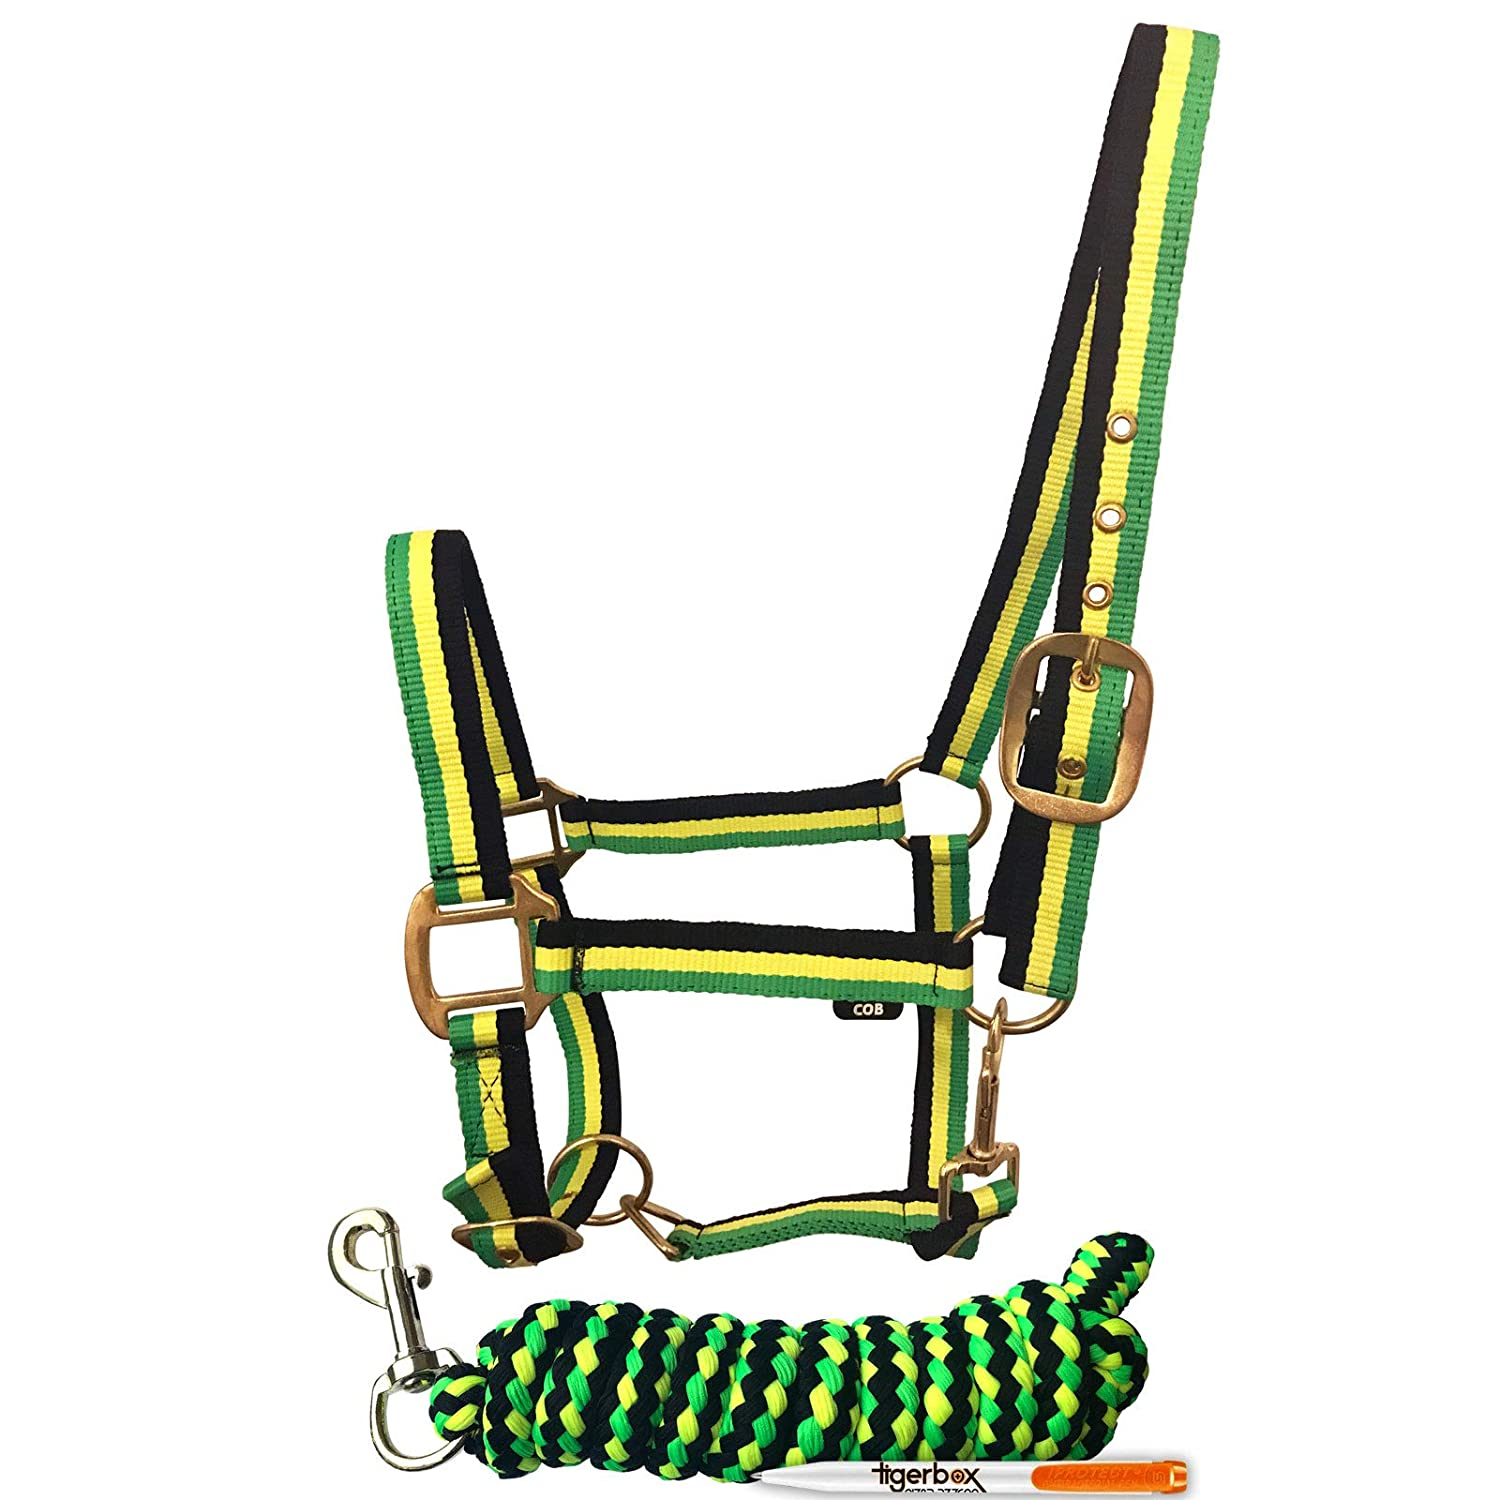 Tigerbox Bright Neon Striped Adjustable Nylon Horse Headcollar Lead Rope Set and Antibacterial Pen